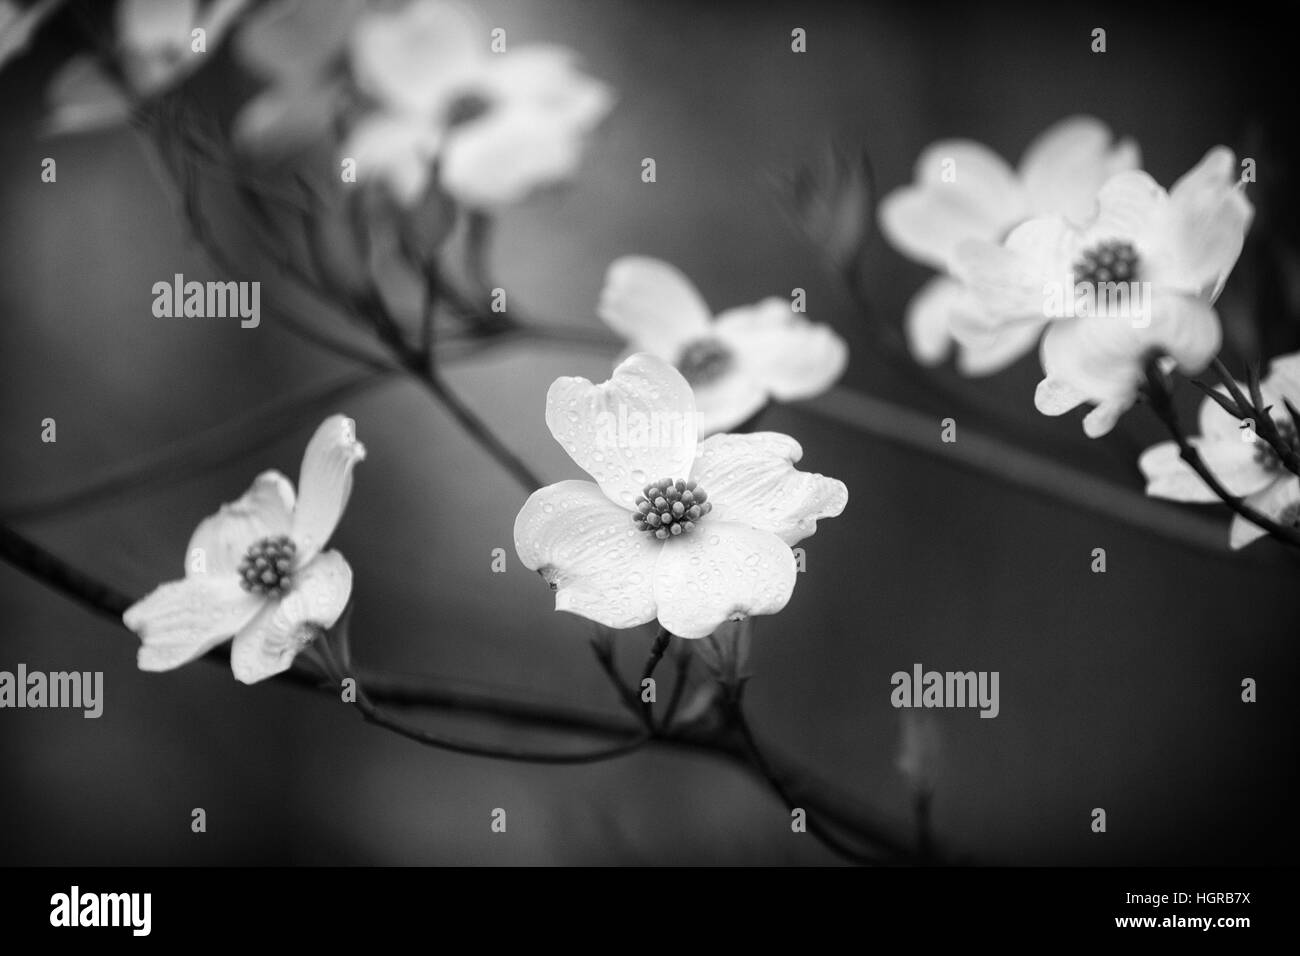 Blooming Dogwood tree in Black and White Stock Photo